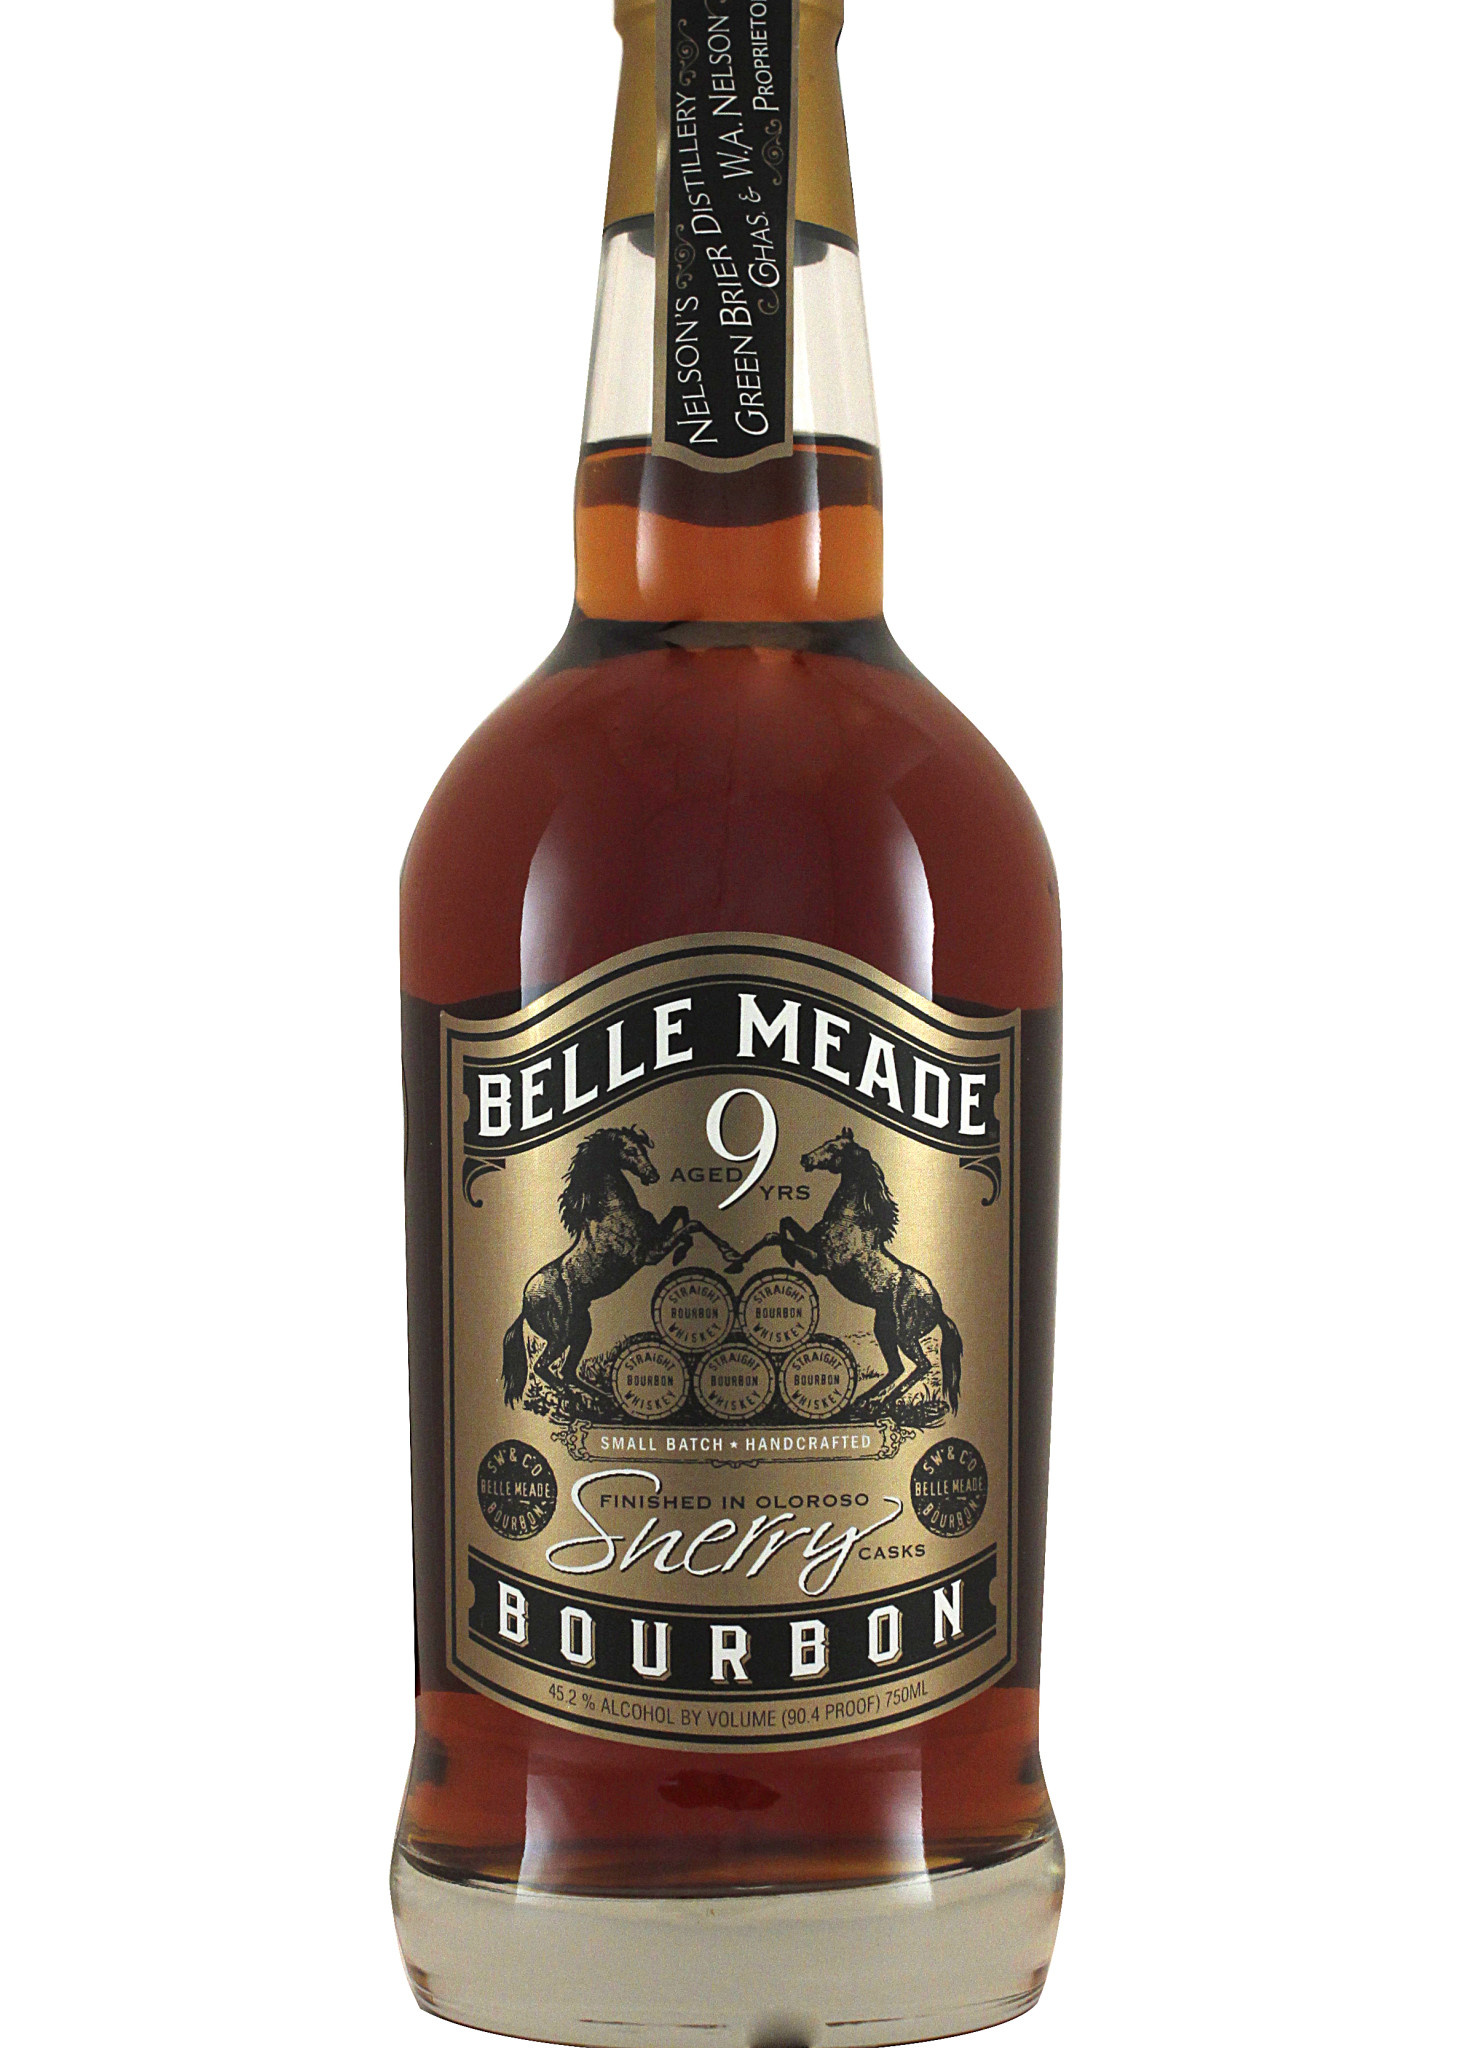 Belle Meade Sherry Bourbon 9 Year Aged,  Nashville, Tennessee